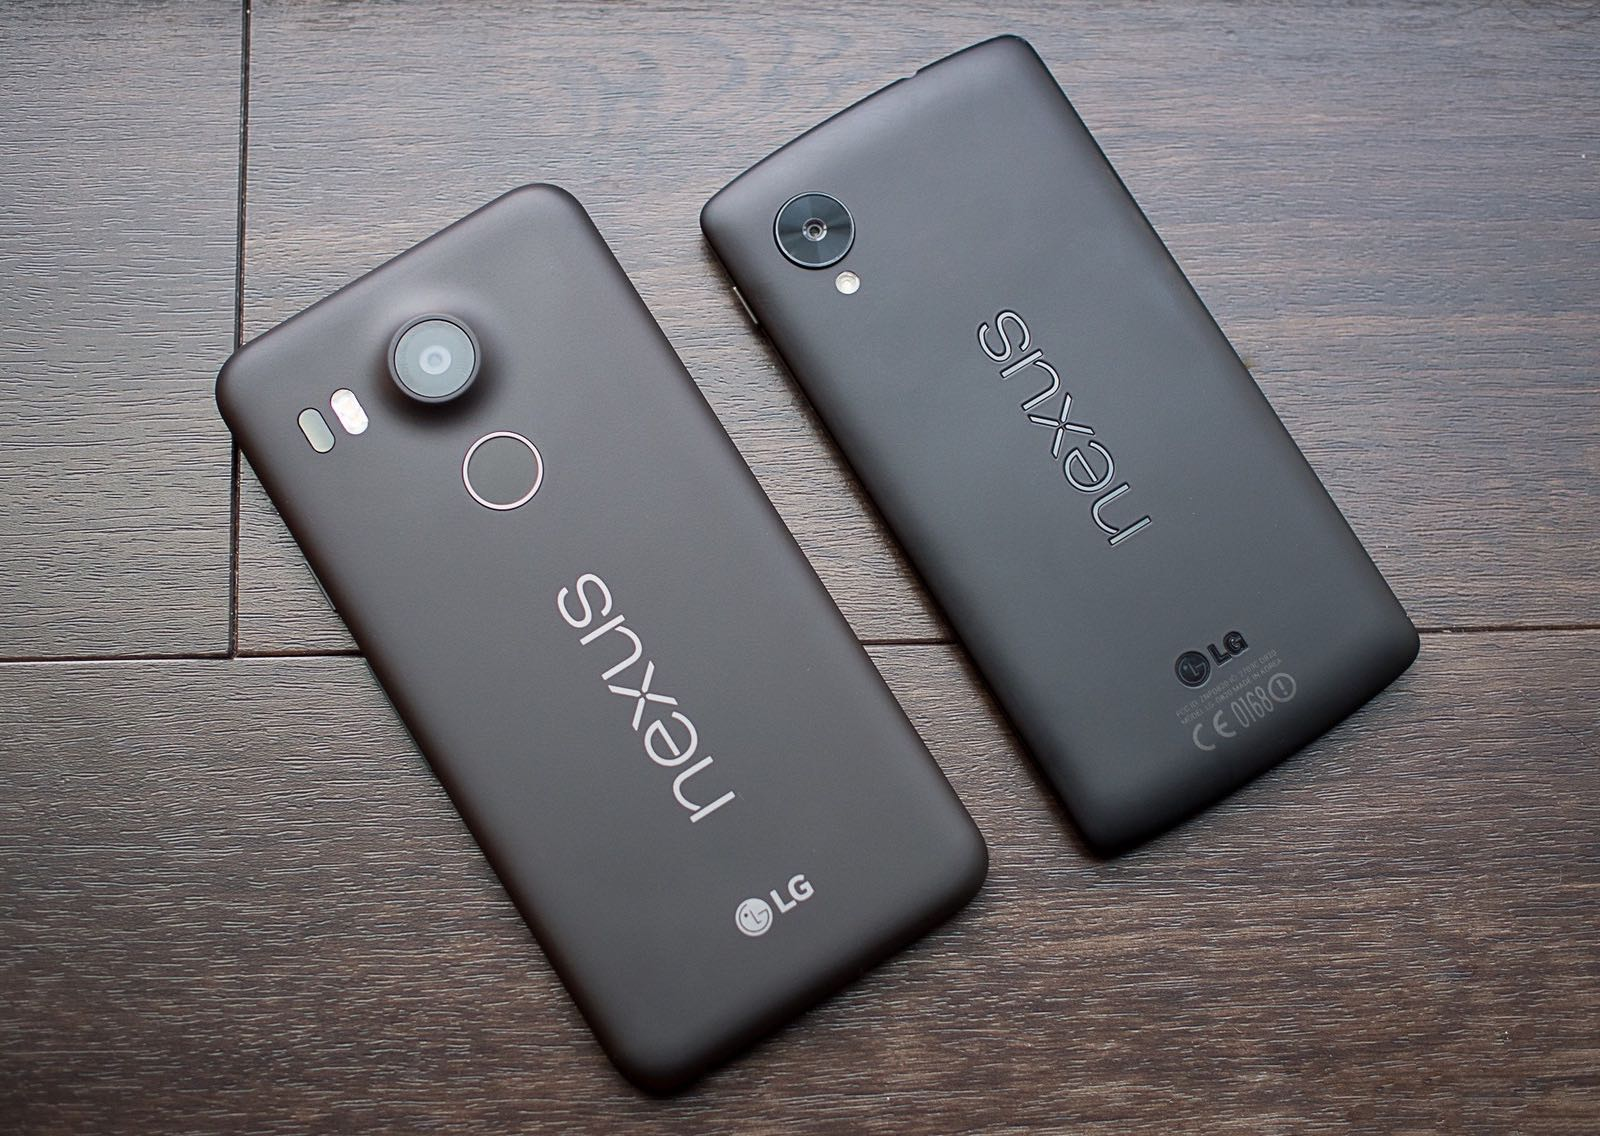 Google LG Nexus 5 Photo buy